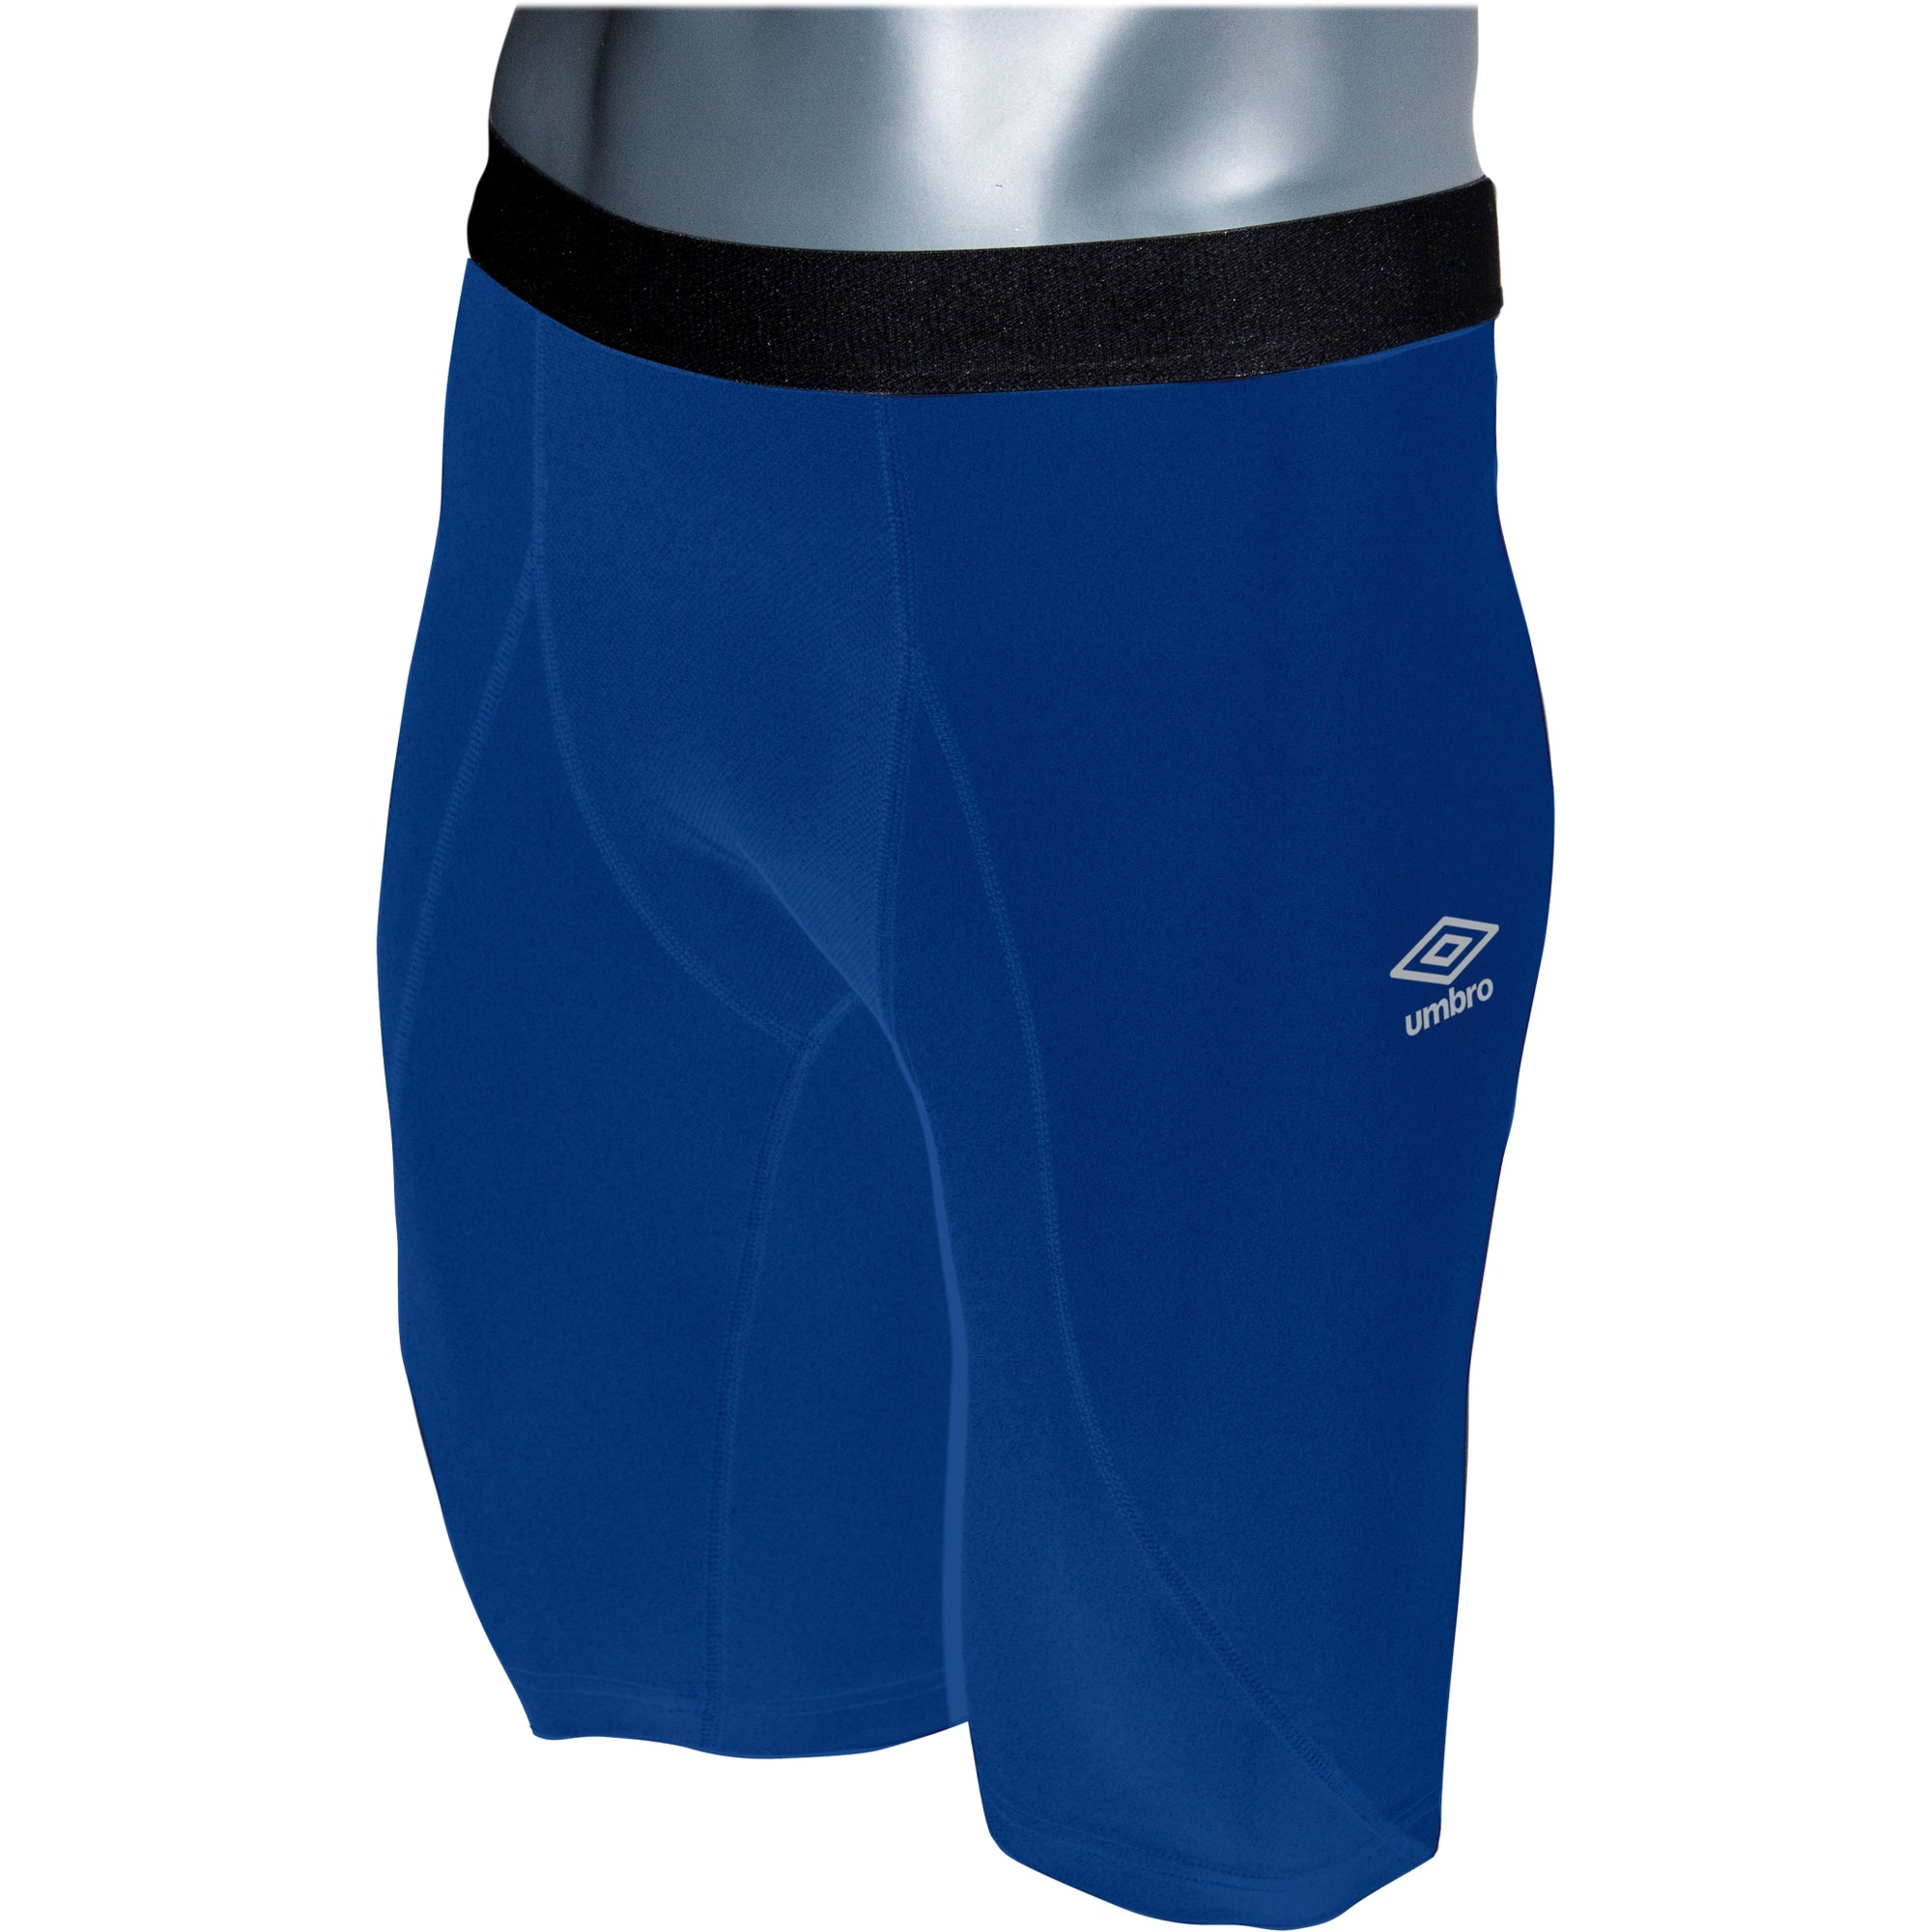 Umbro Elite Player Power Short in royal blue with black waist band